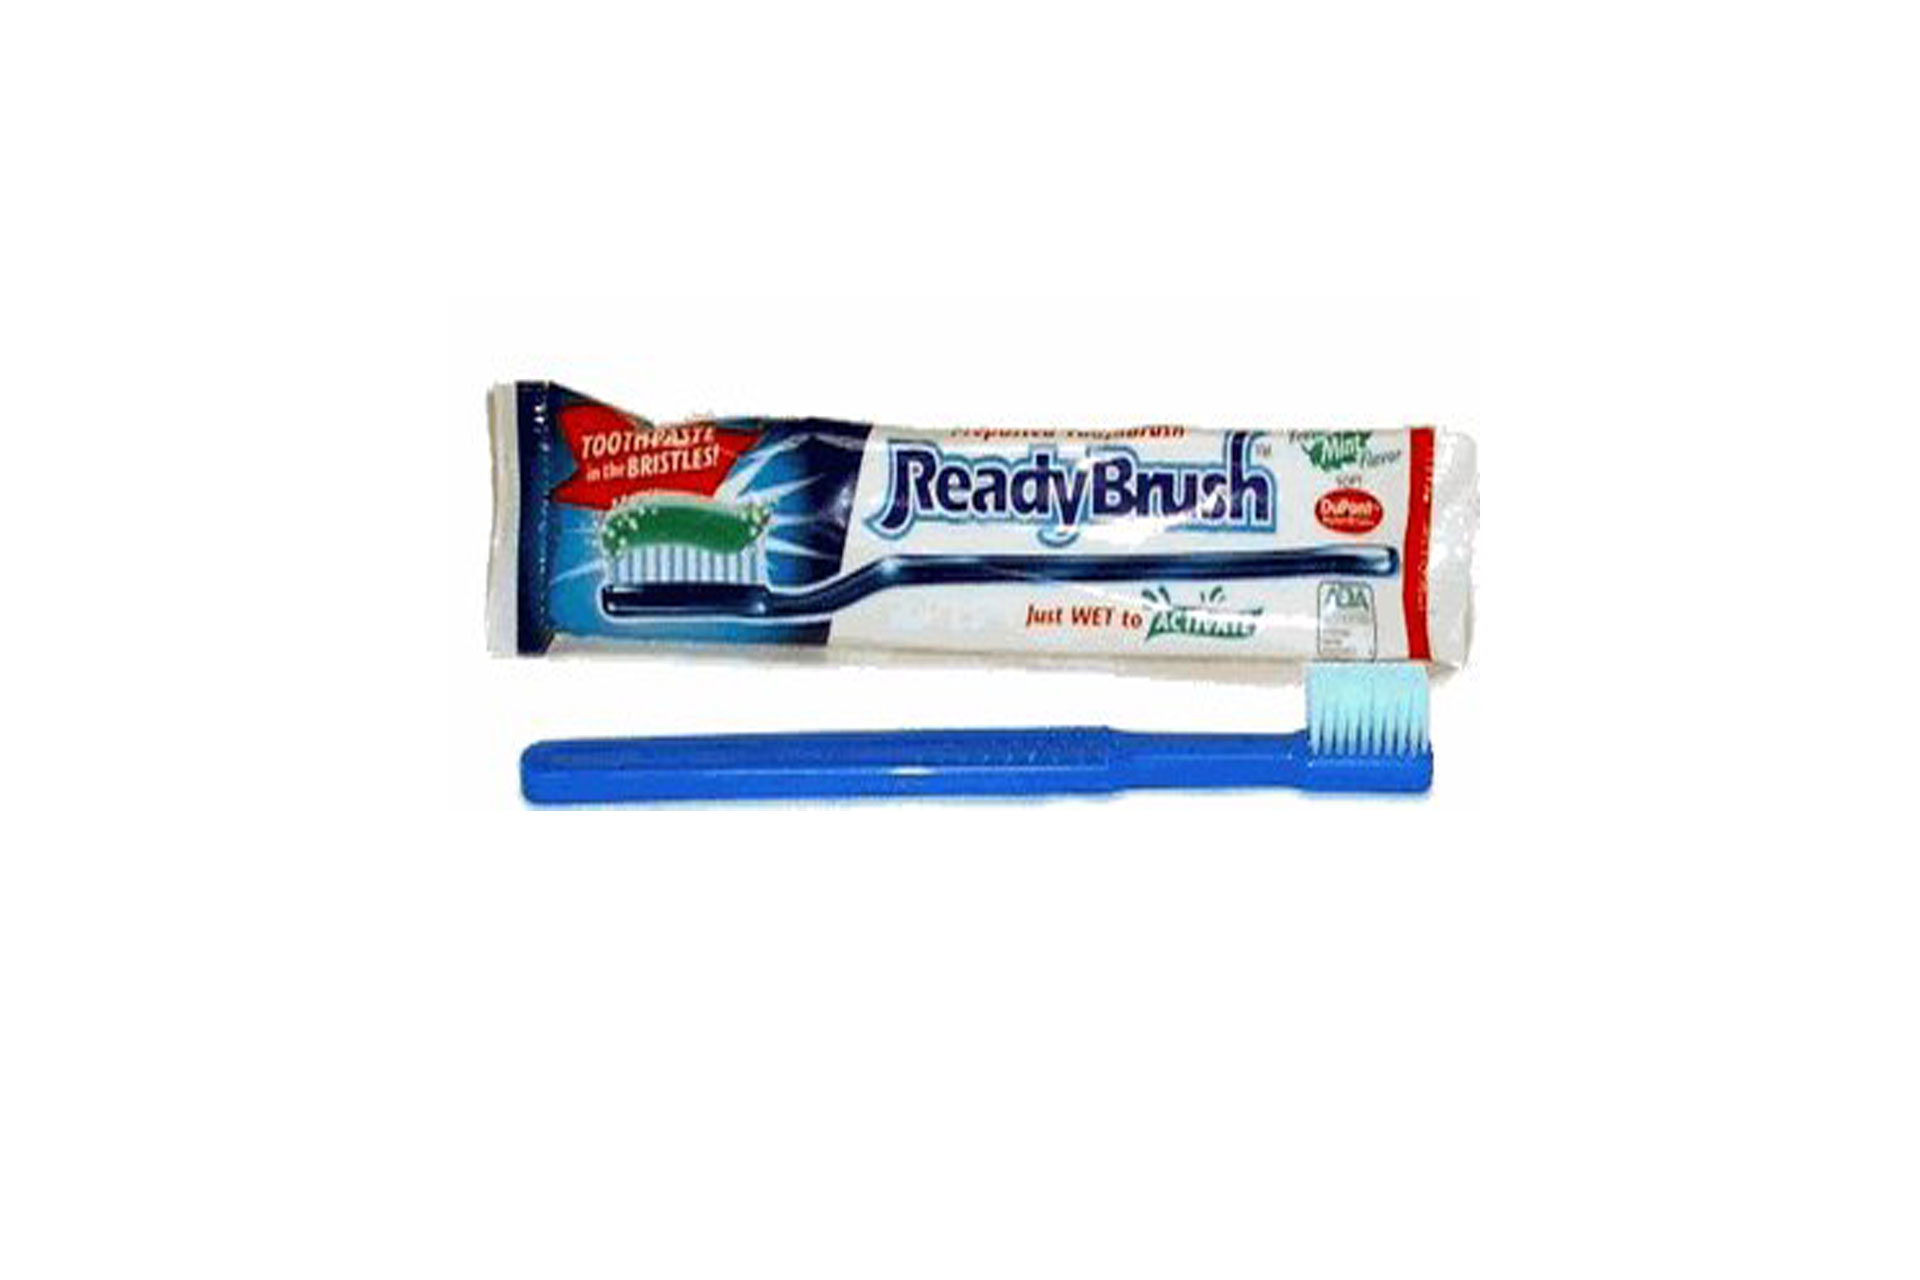 Toothpaste and toothbrush; Courtesy of Amazon